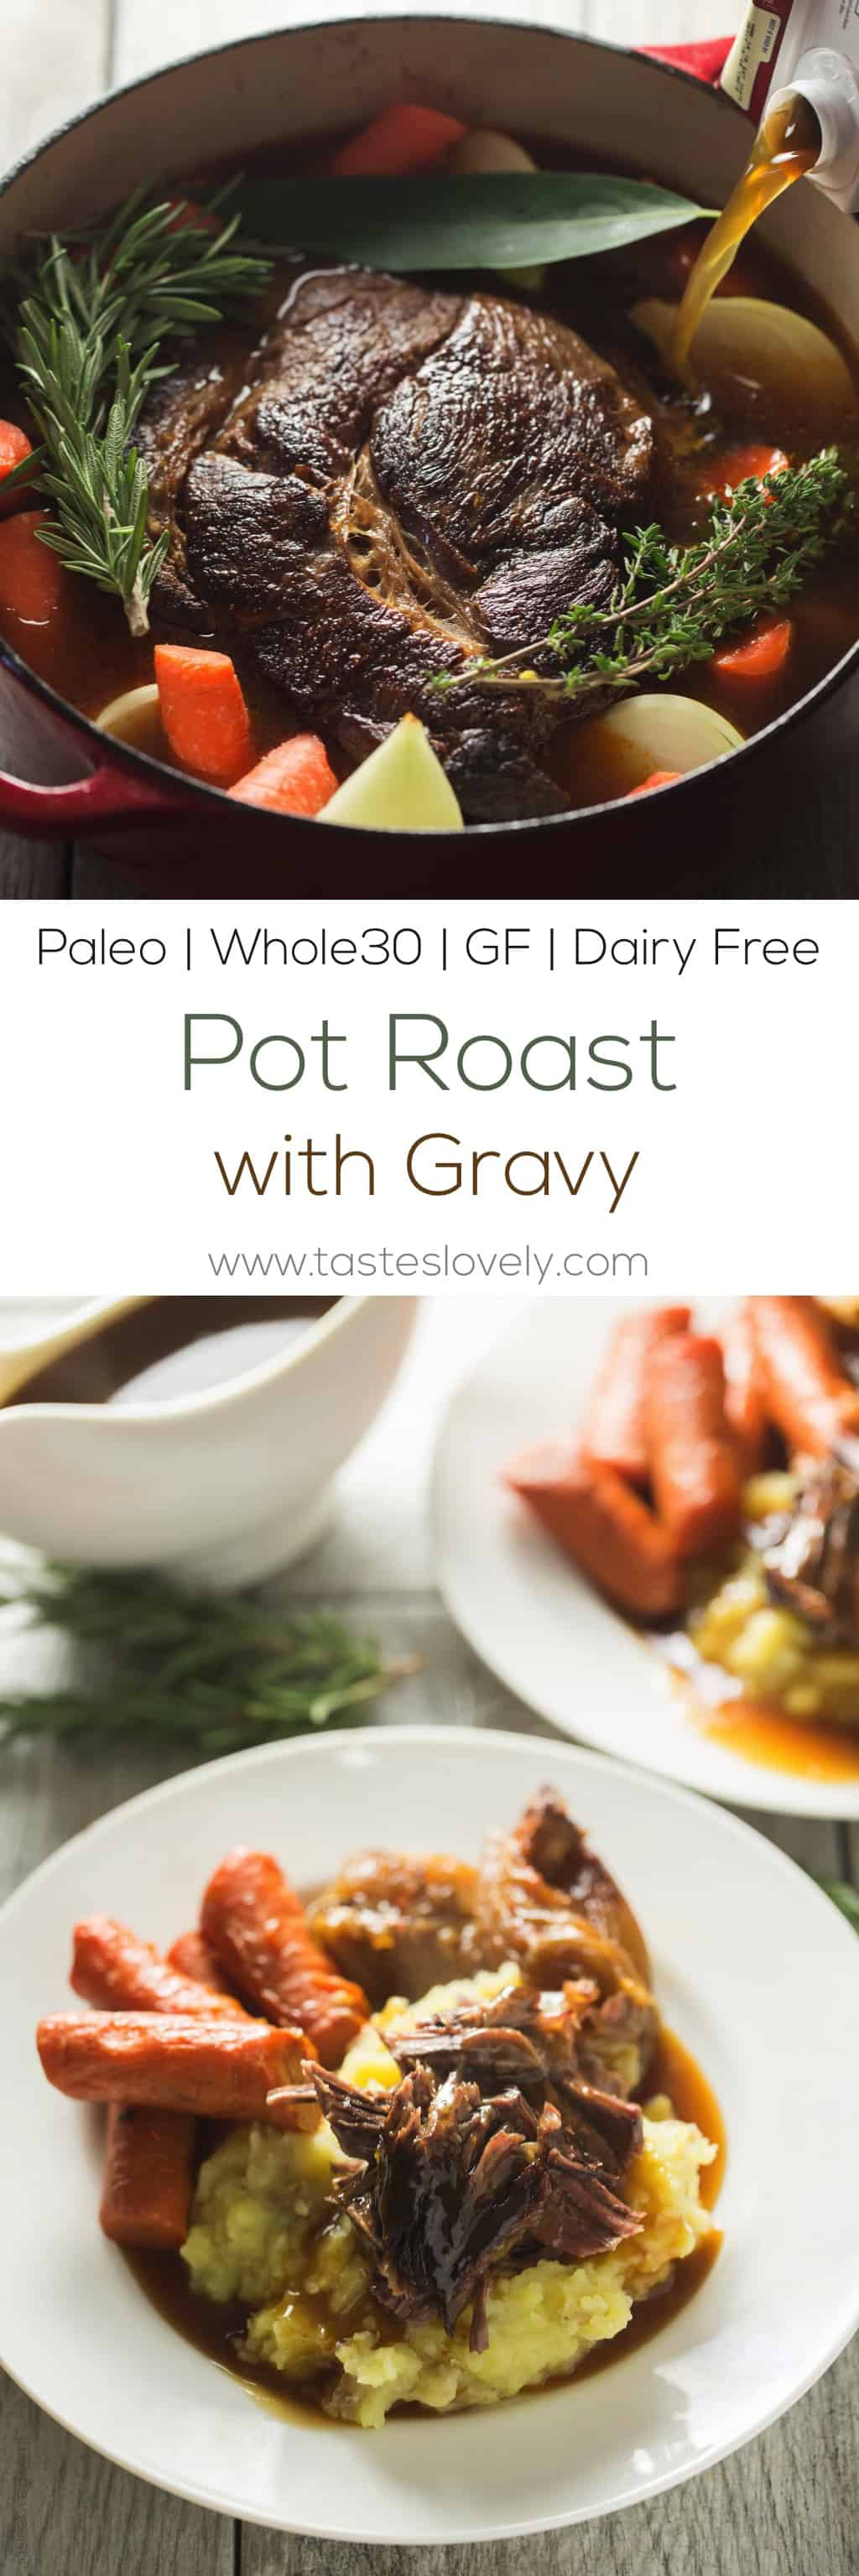 Paleo Pot Roast with Gravy - the most flavorful and juicy pot roast slow roasted in the oven. You would never guess it is dairy free, flour free, gluten free, and Whole30!